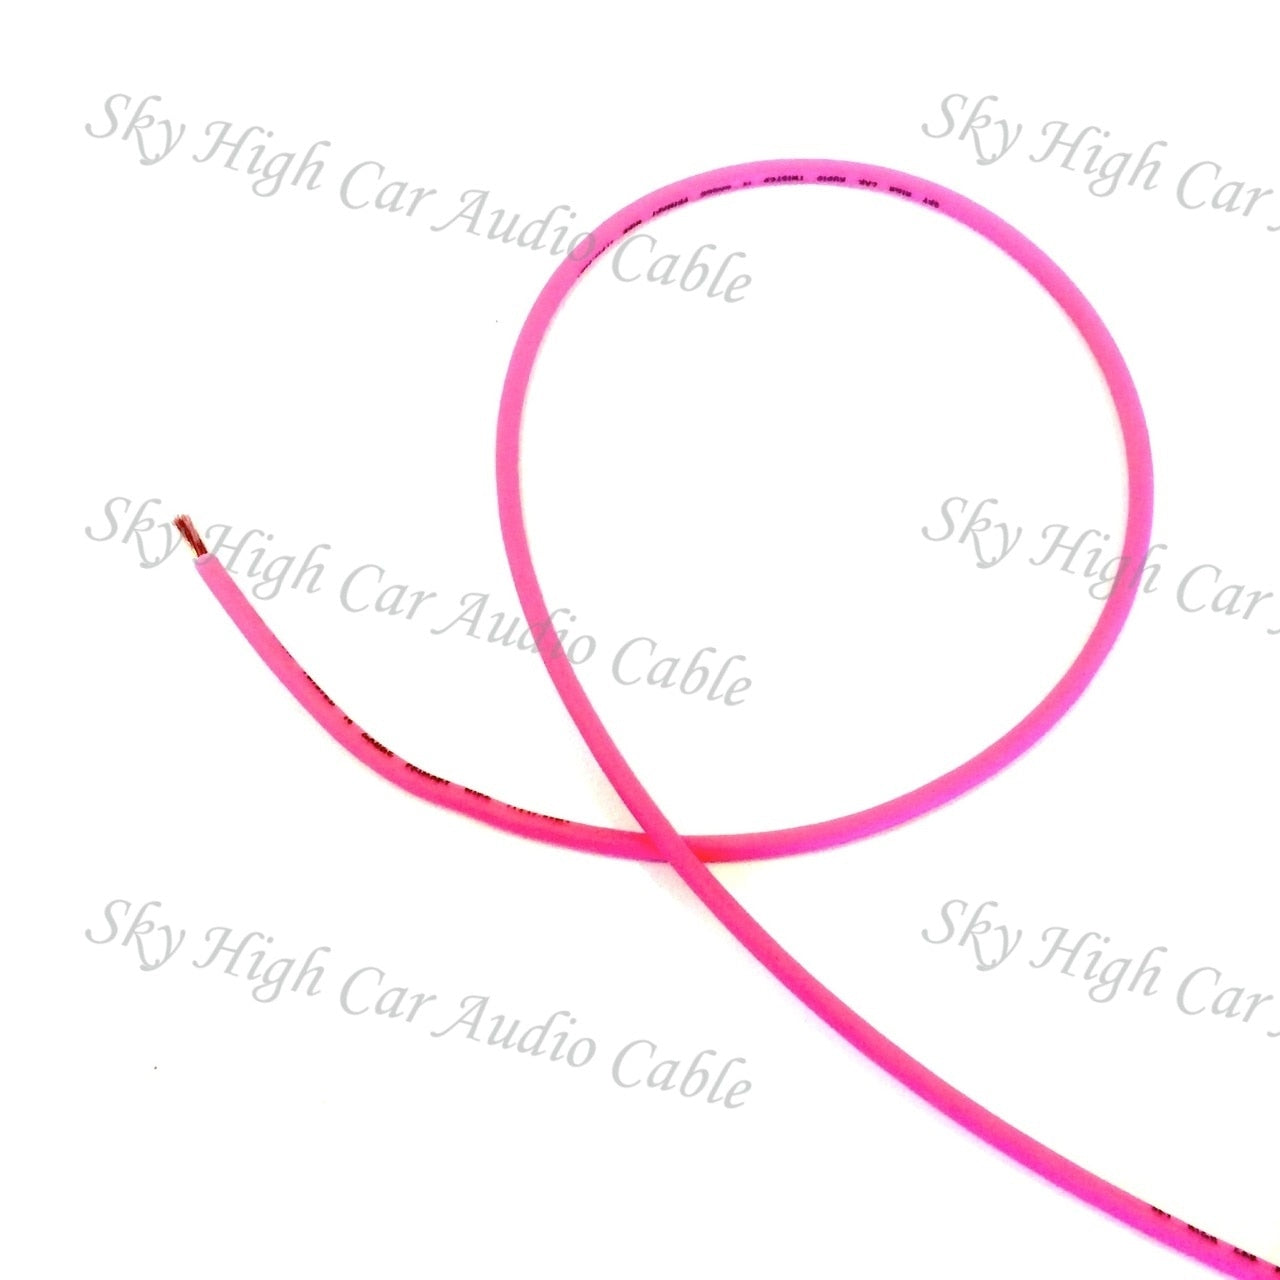 Sky High Car Audio 16 Gauge CCA Remote (Primary) Wire 25'